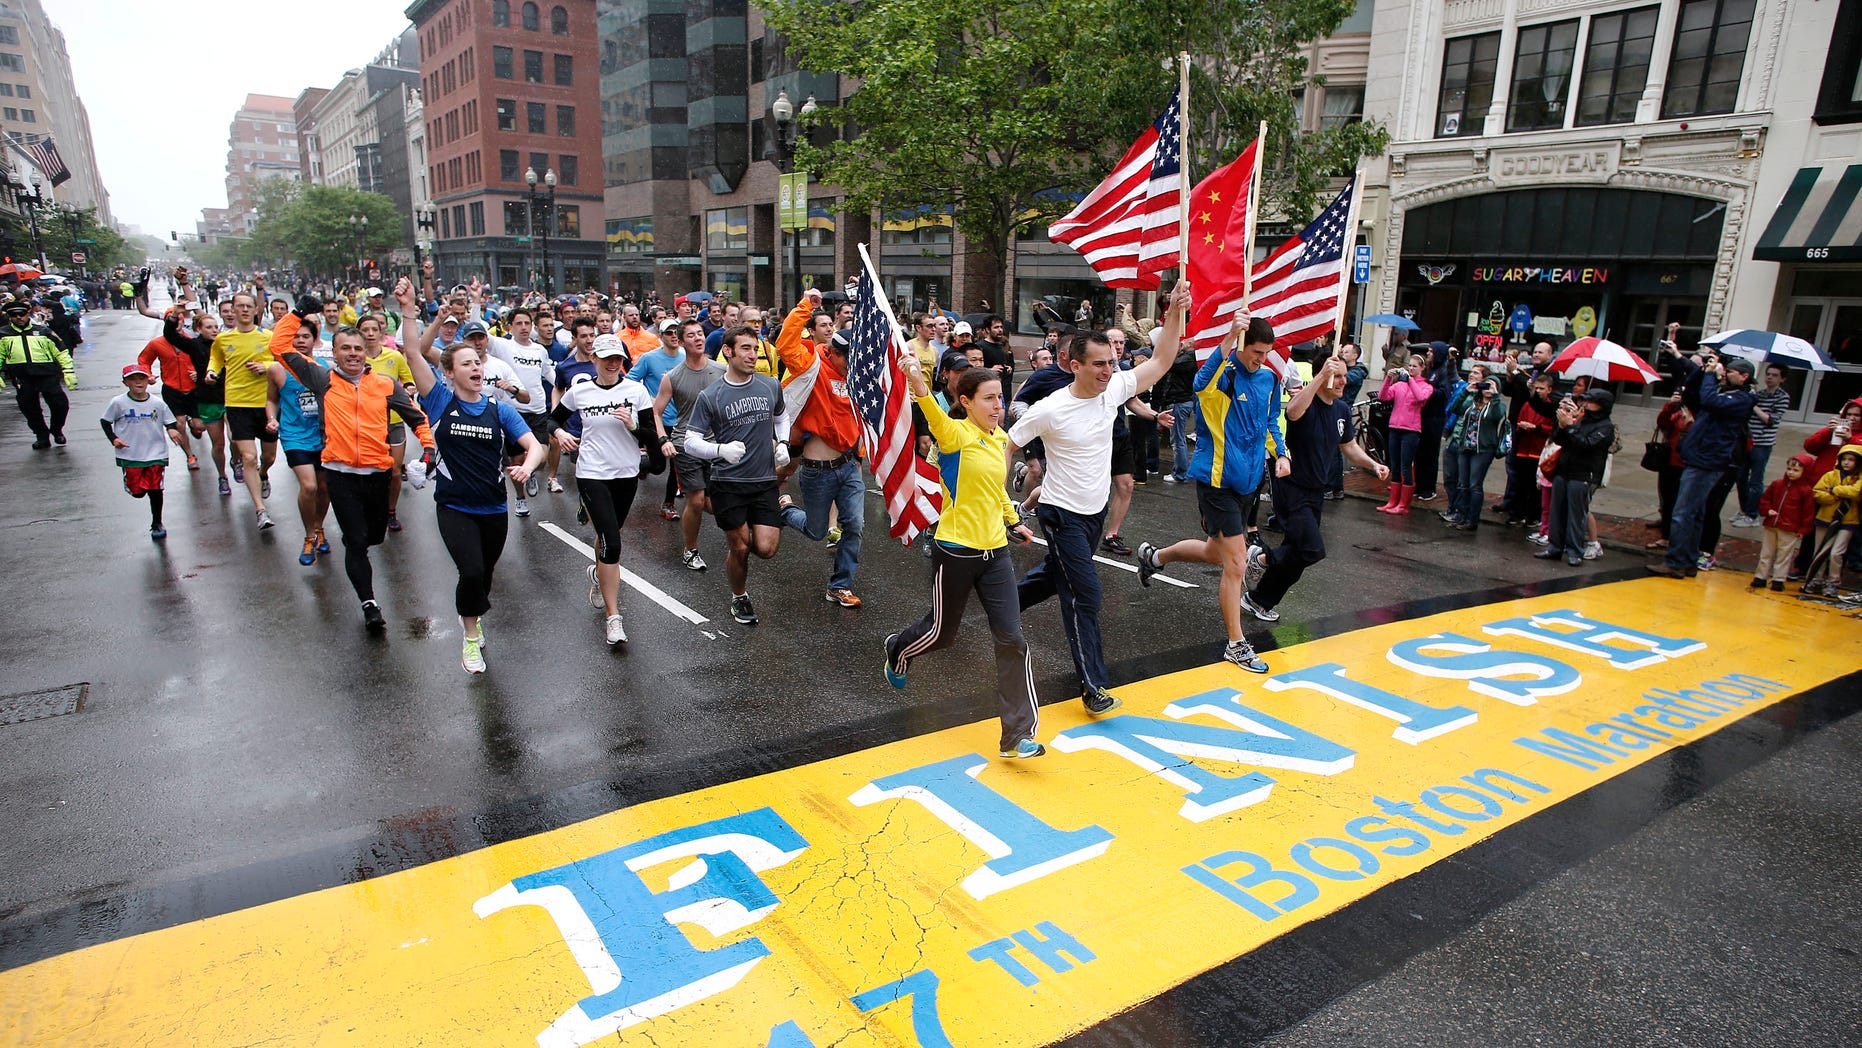 May 25, 2013: Runners who were unable to finish the Boston Marathon on April 15 because of the bombings cross the finish line on Boylston Street after the city allowed them to finish the last mile of the race in Boston.